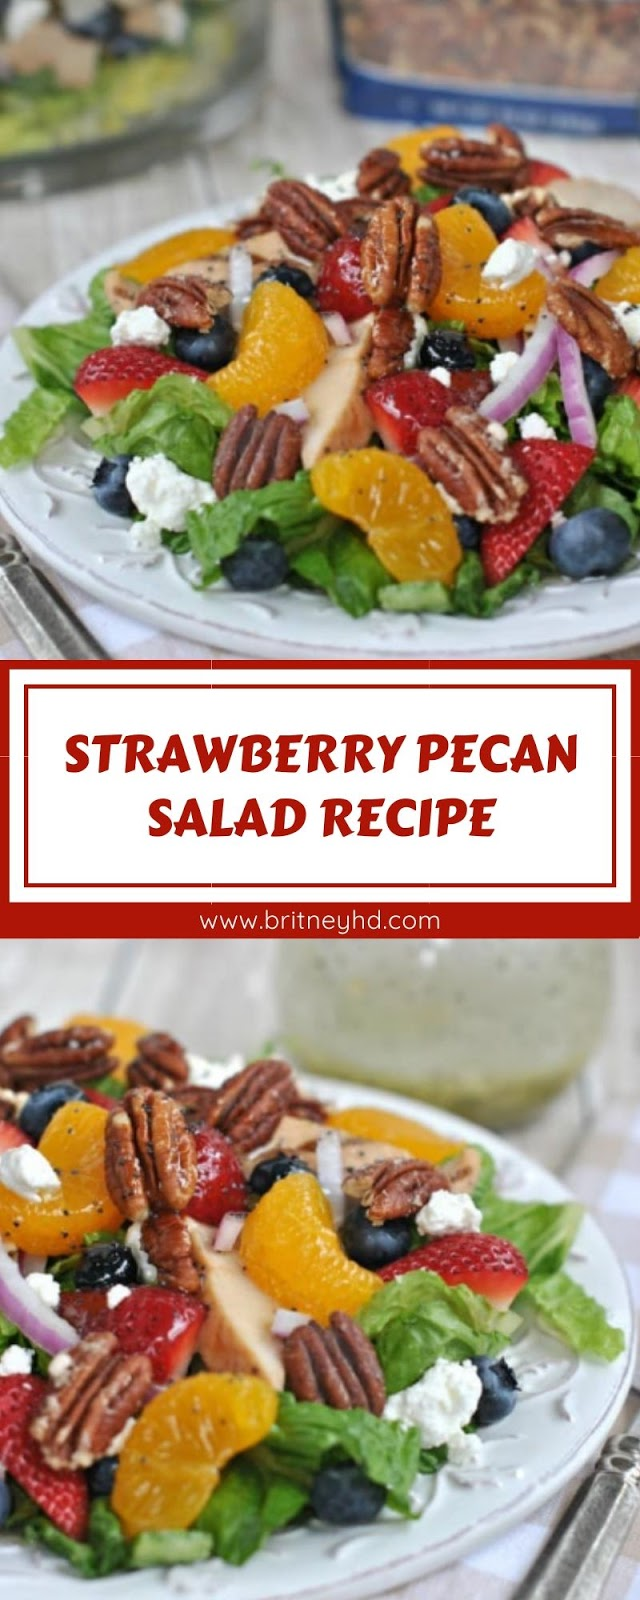 STRAWBERRY PECAN SALAD RECIPE